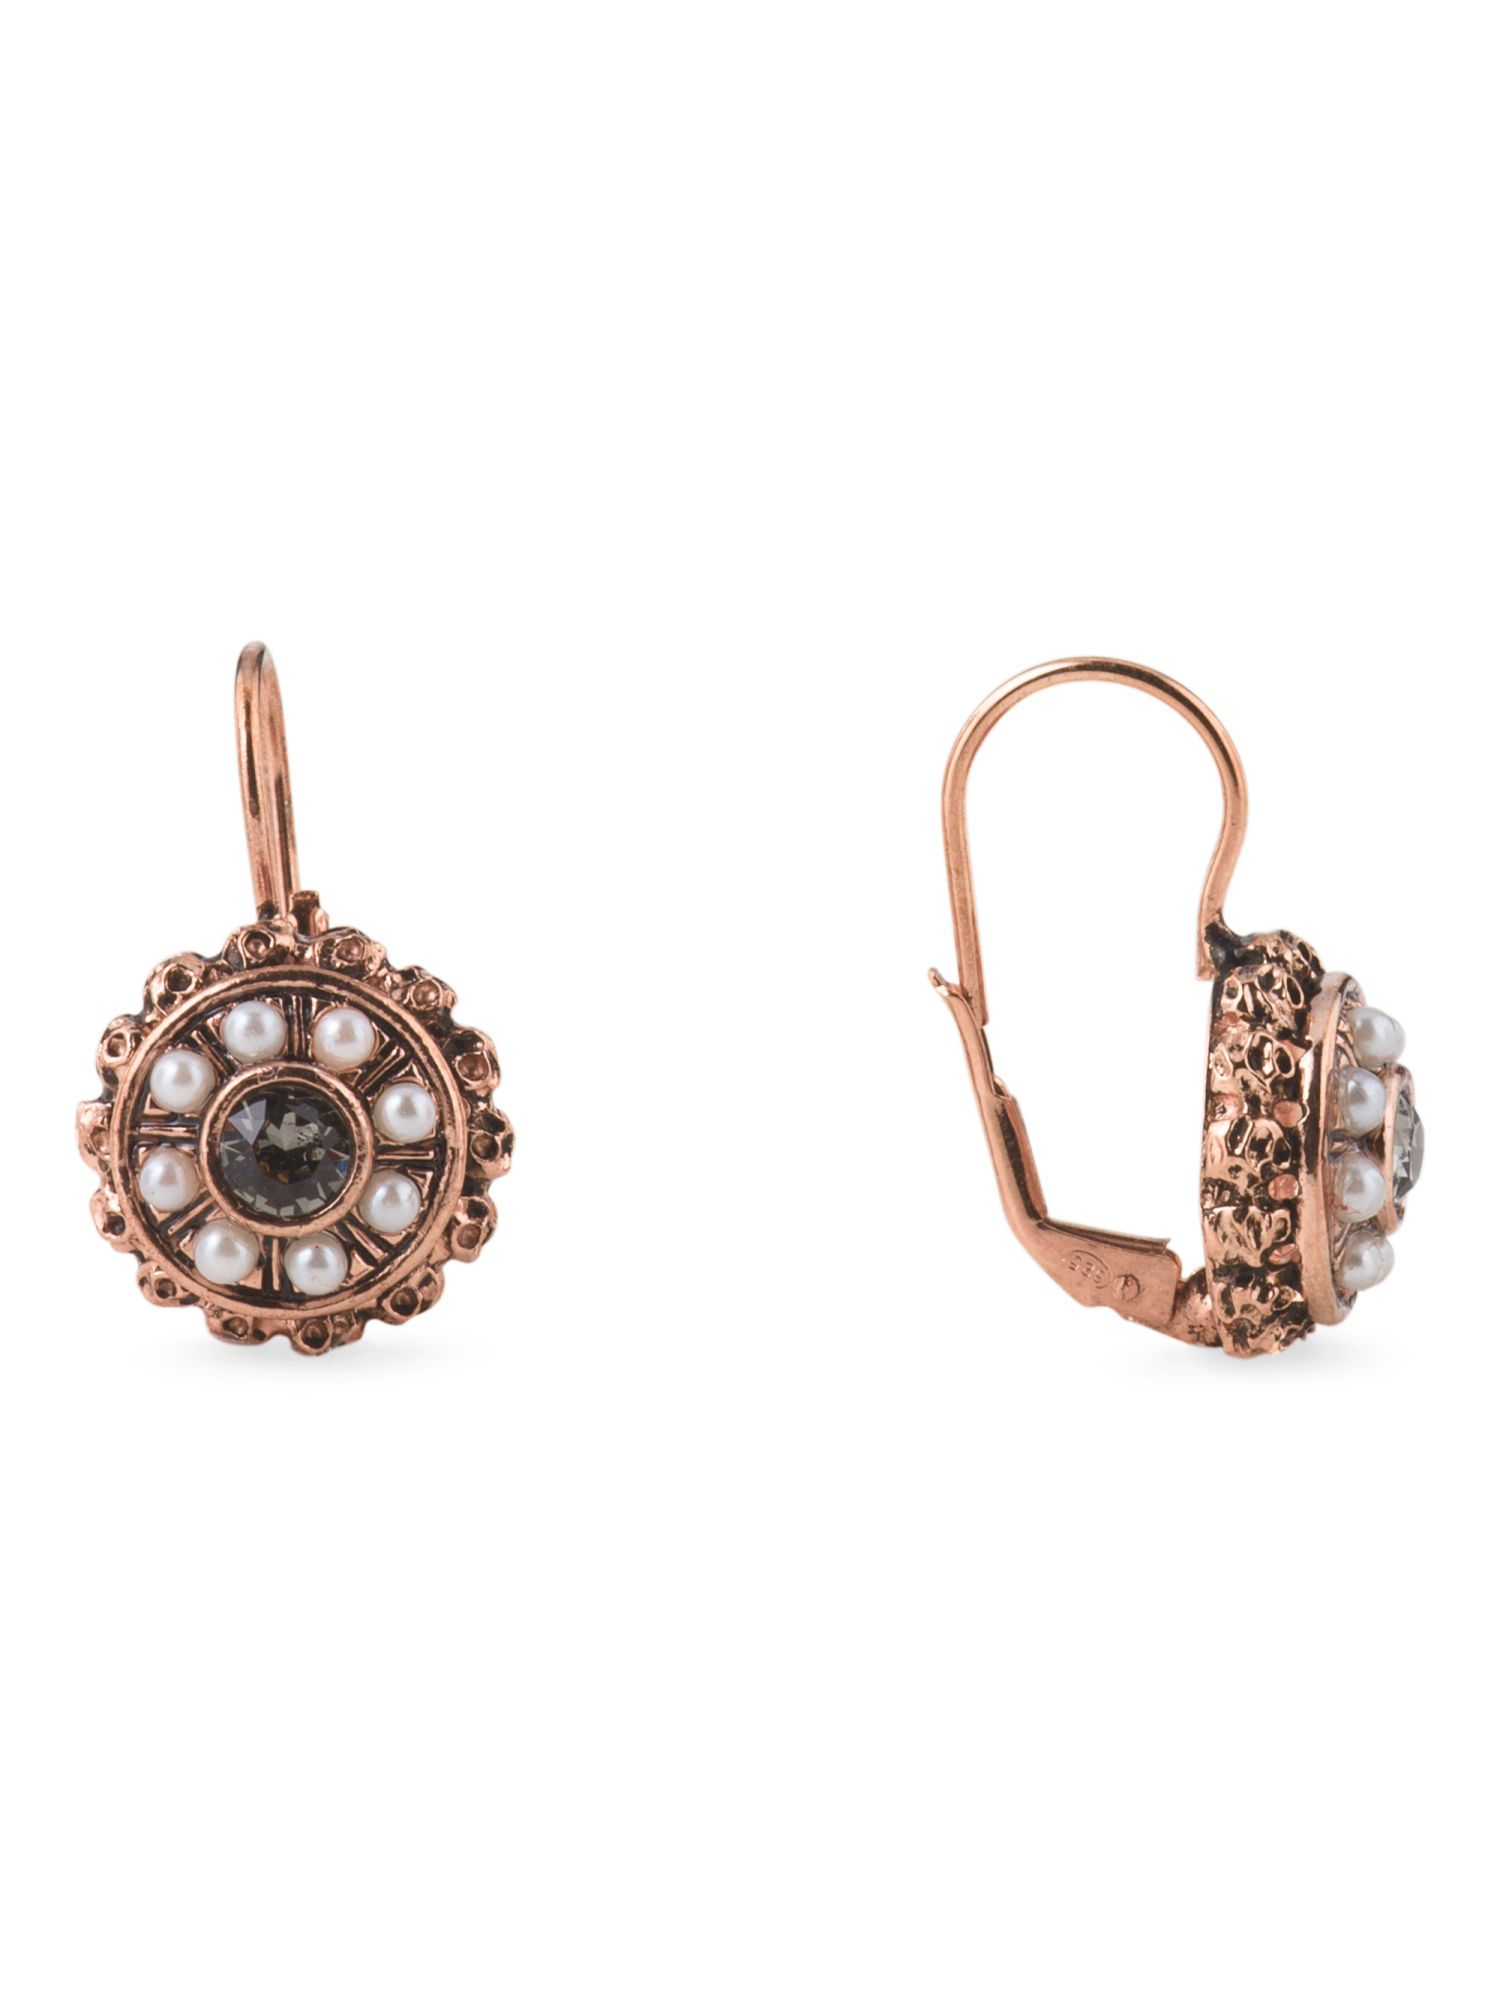 high resolution image Mia Fiore Jewelry Pinterest Sterling